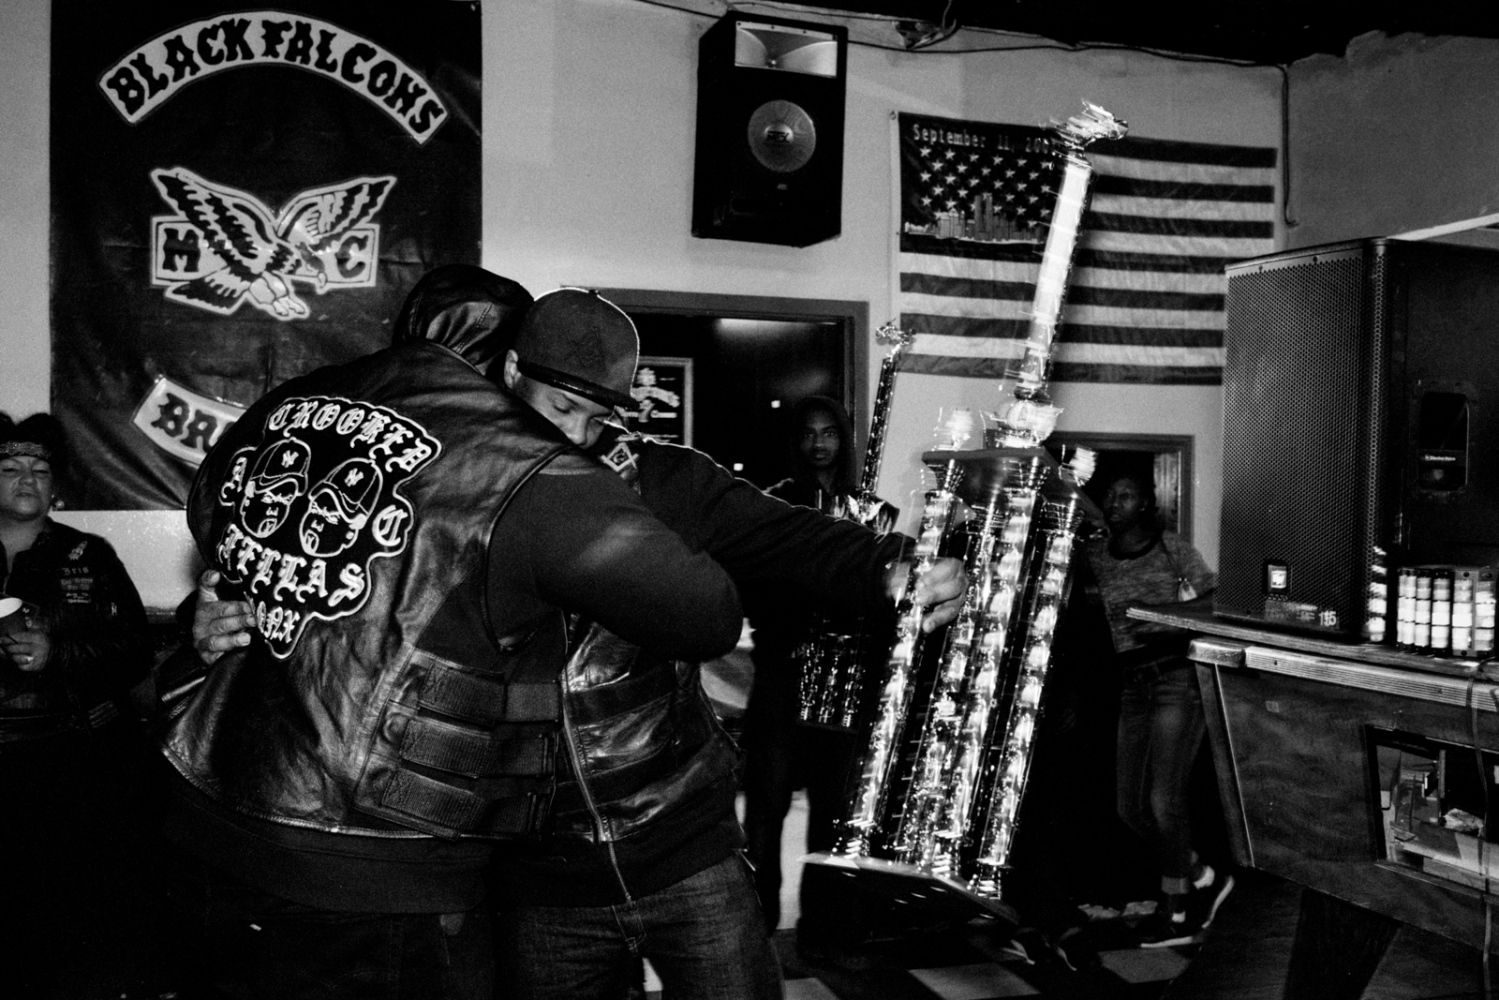 President Choice awards a trophy to a member of Crooked Fellas AC (automotive club) at the Black Falcons MC trophy party, The Bronx, 2016